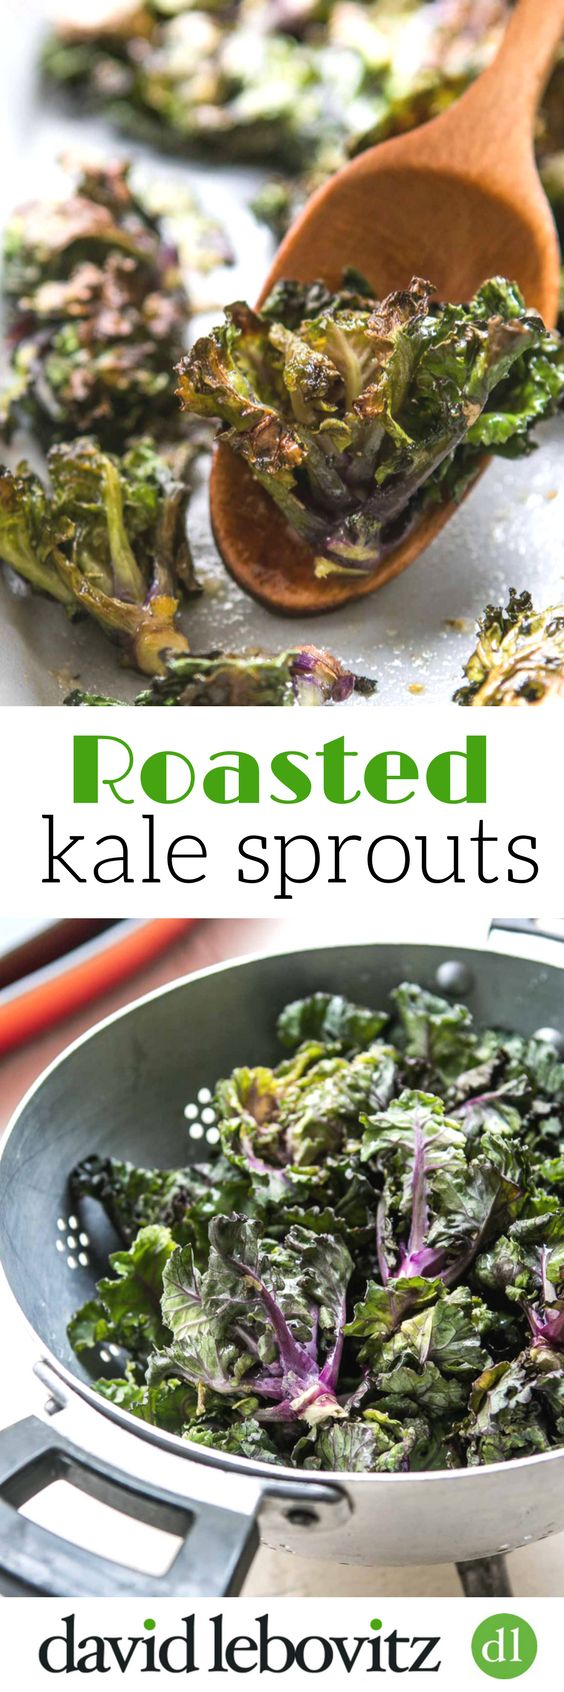 Delicious kale sprouts, roasted in the oven, is an easy recipe that makes these fresh little sprouts take on a wonderful flavor with a crisp nutty texture.